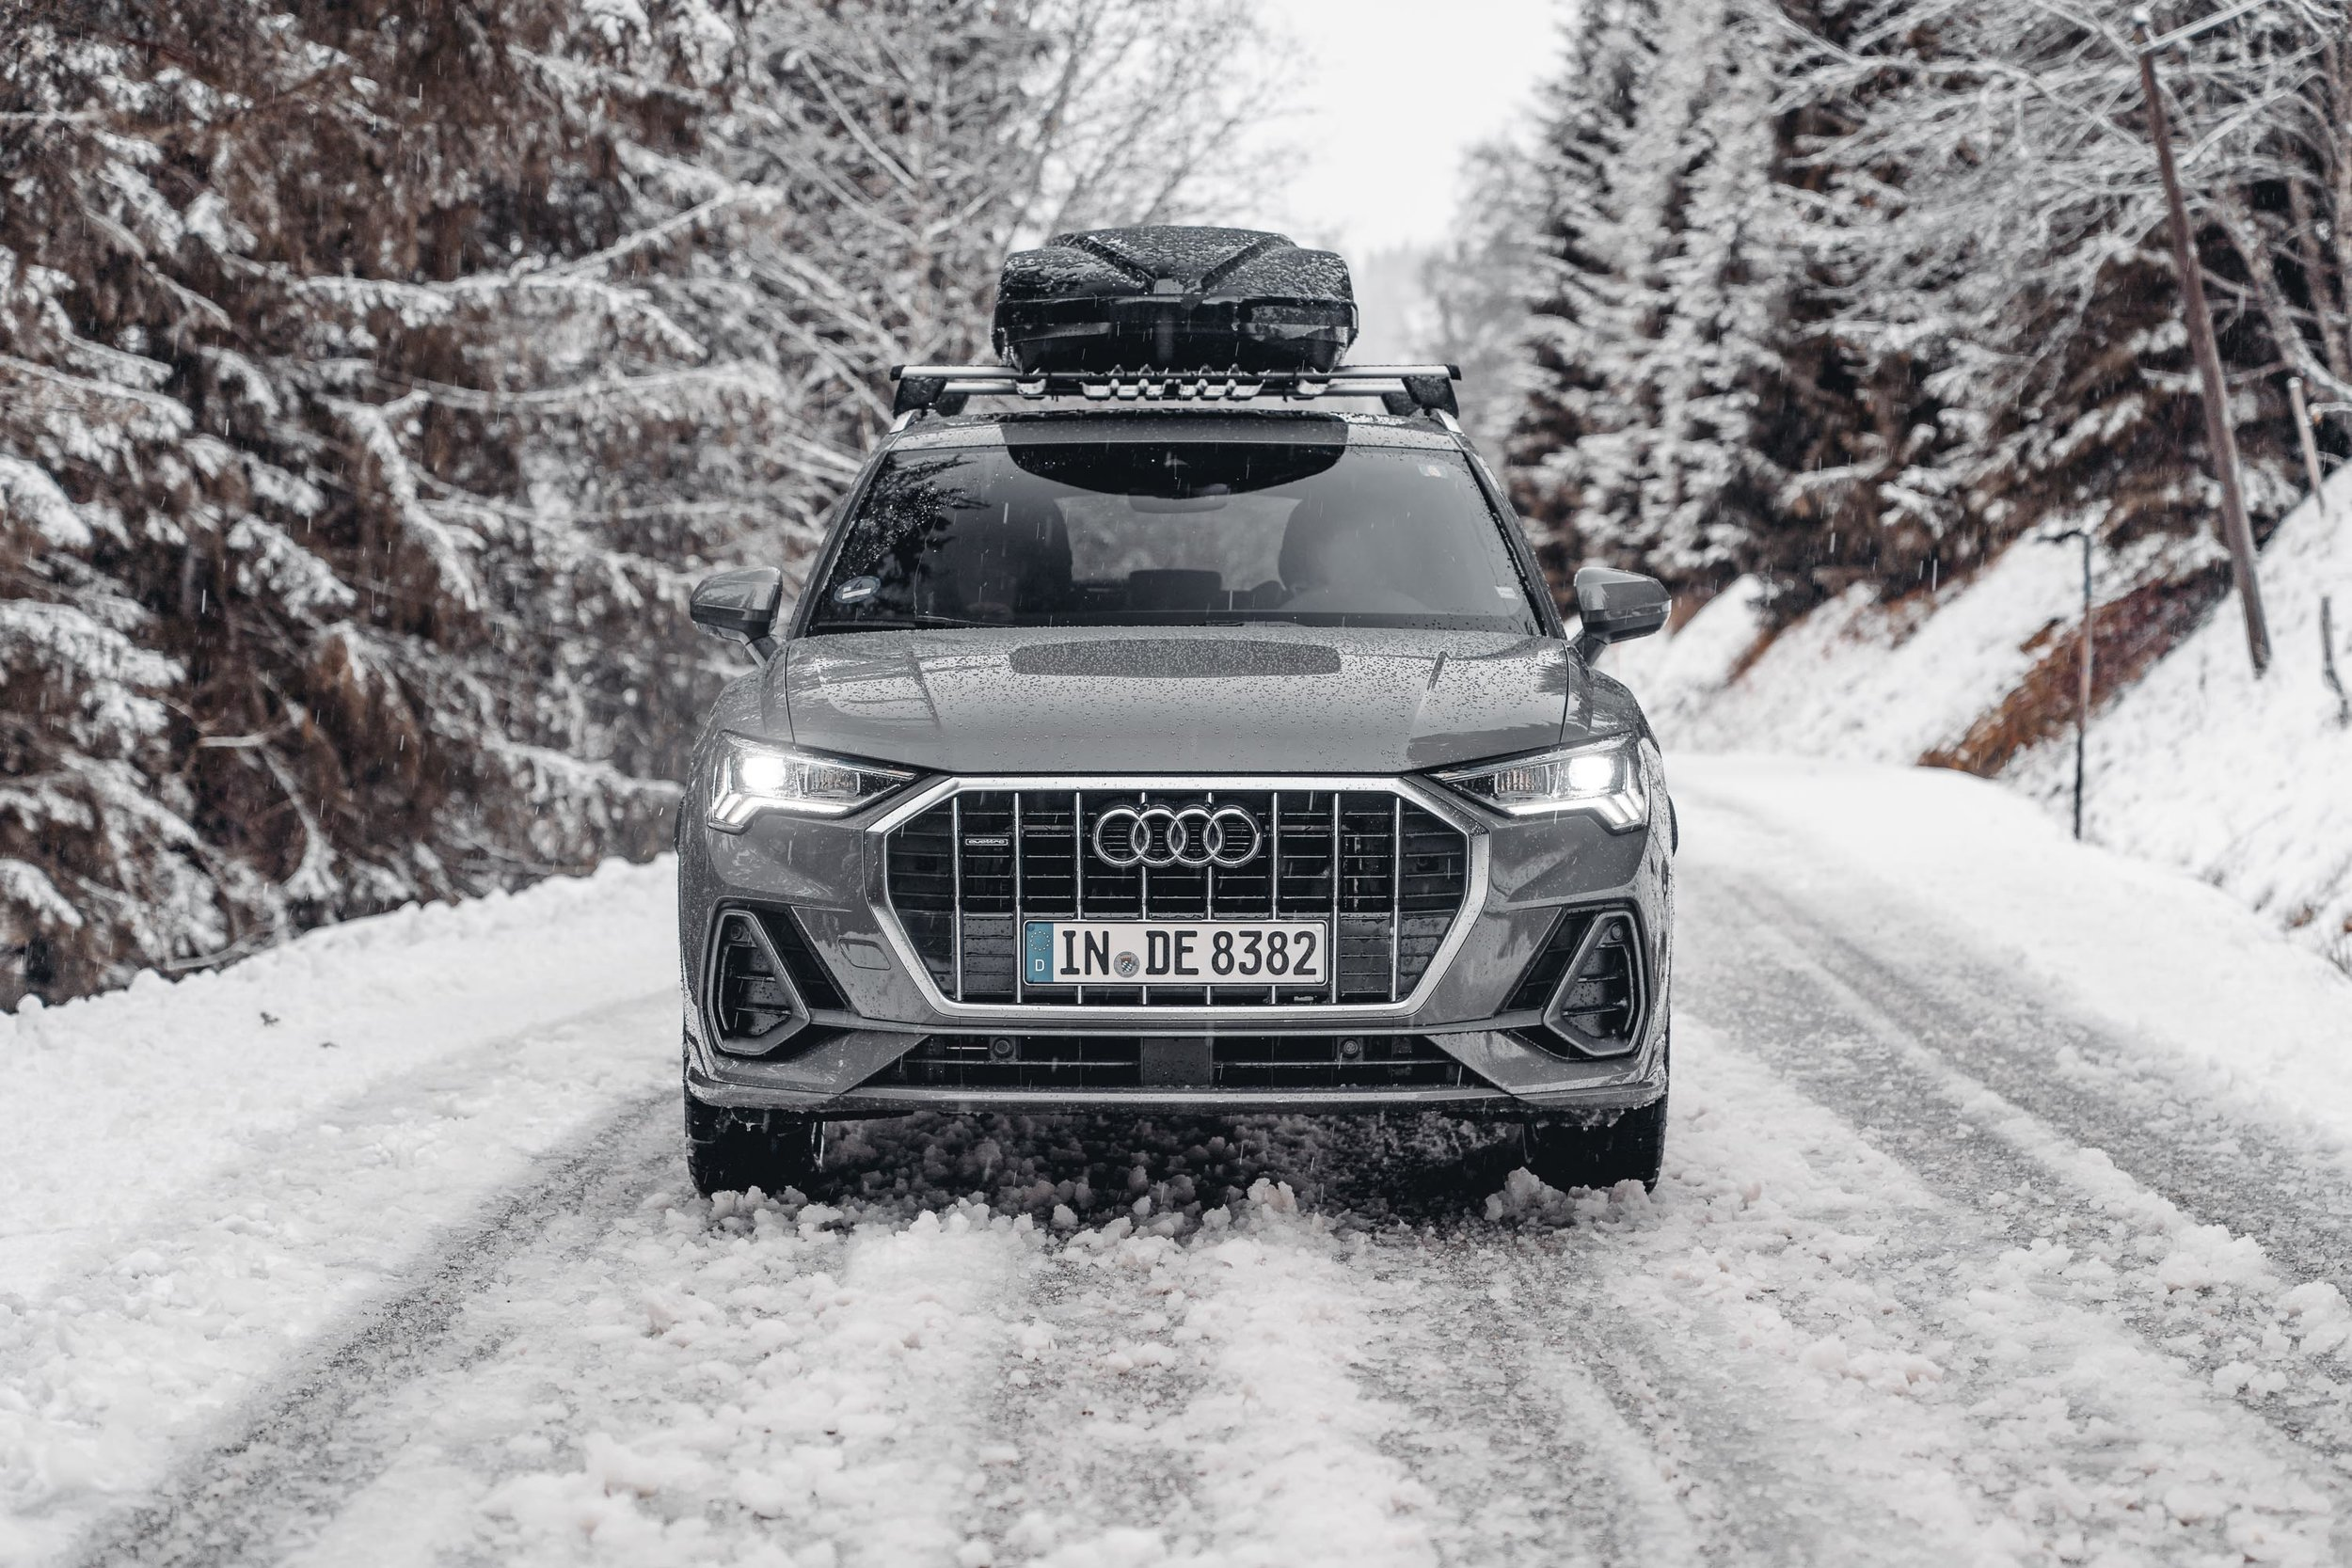 Maximilian-Otto_Best-of-the-Alps_Roadtrip_Winter-2018_18.jpg